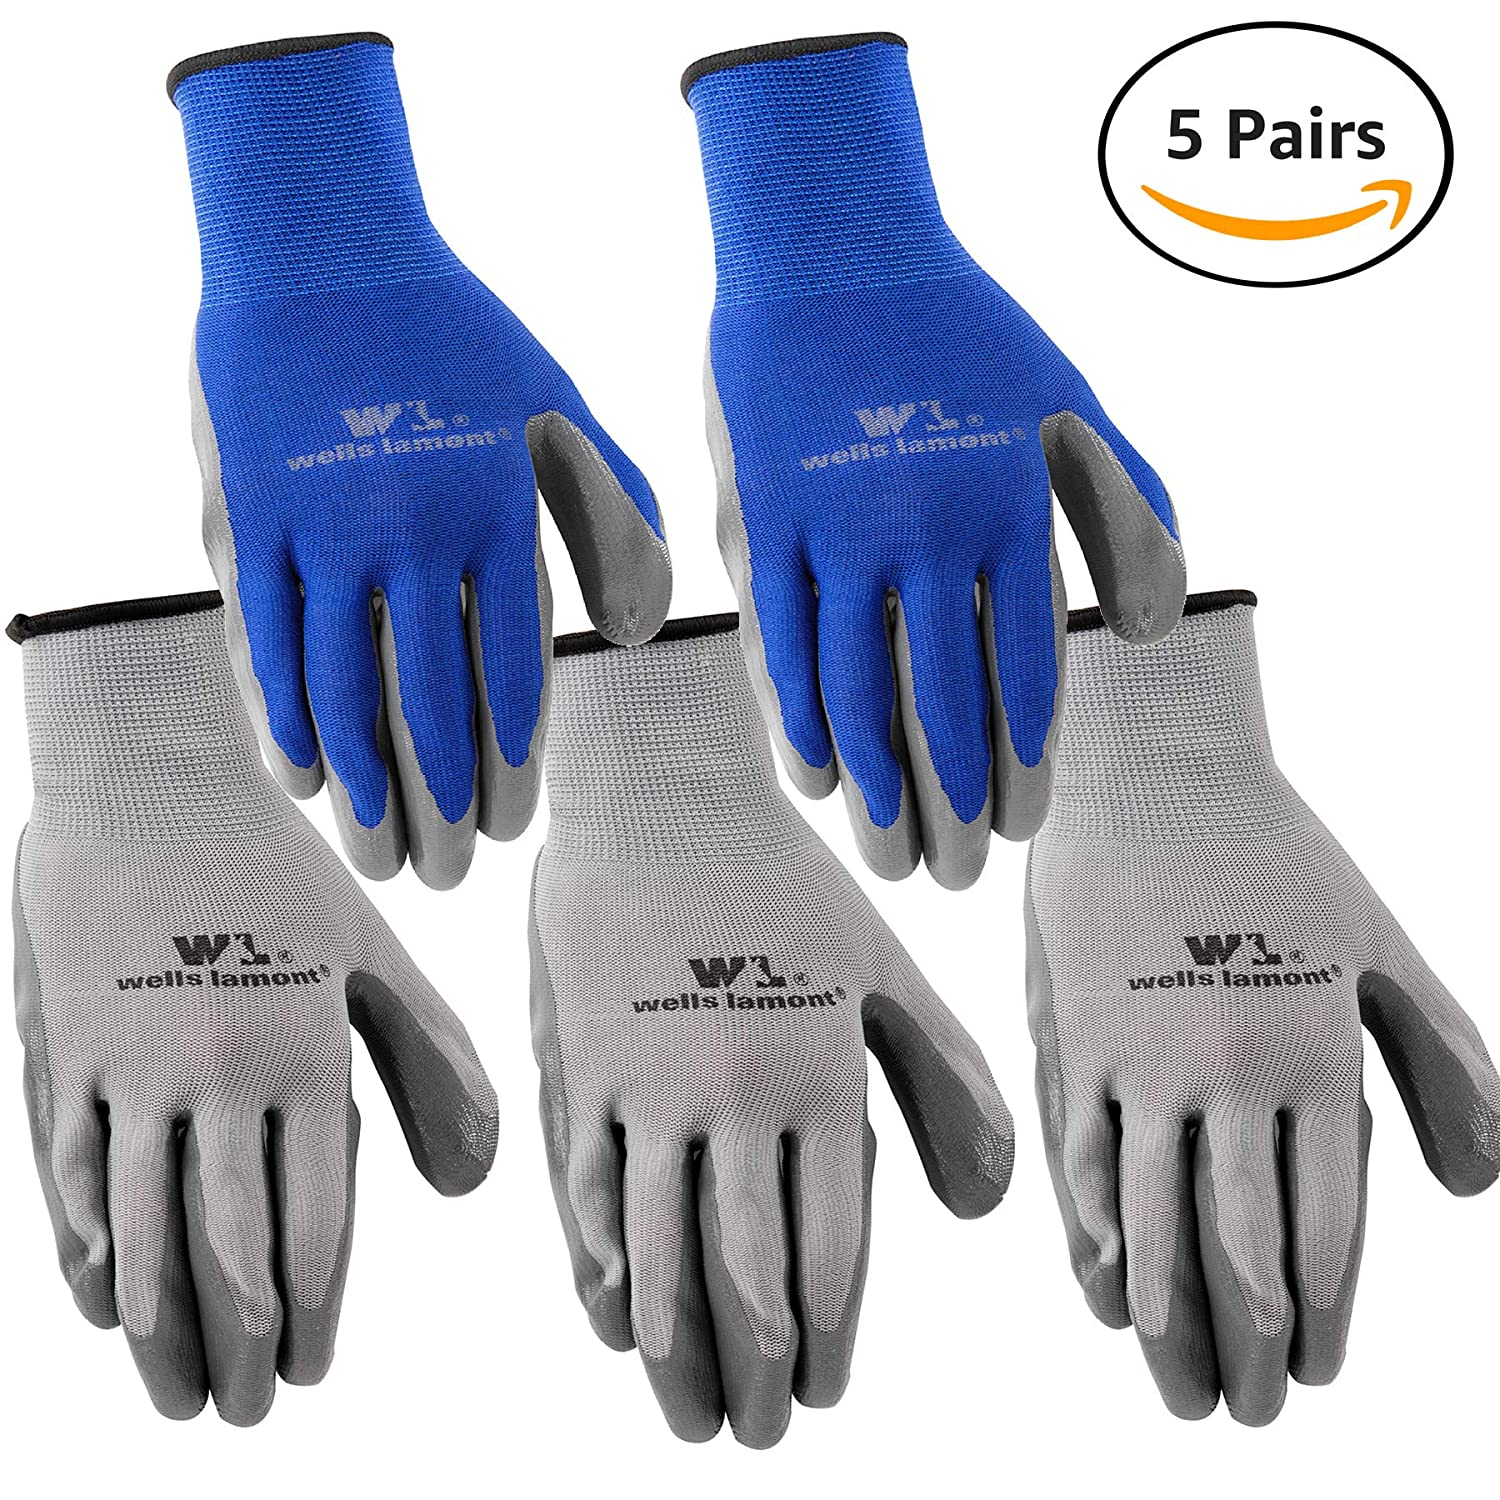 Wells Lamont Nitrile Work Gloves, 5 Pack, Large (580LA)